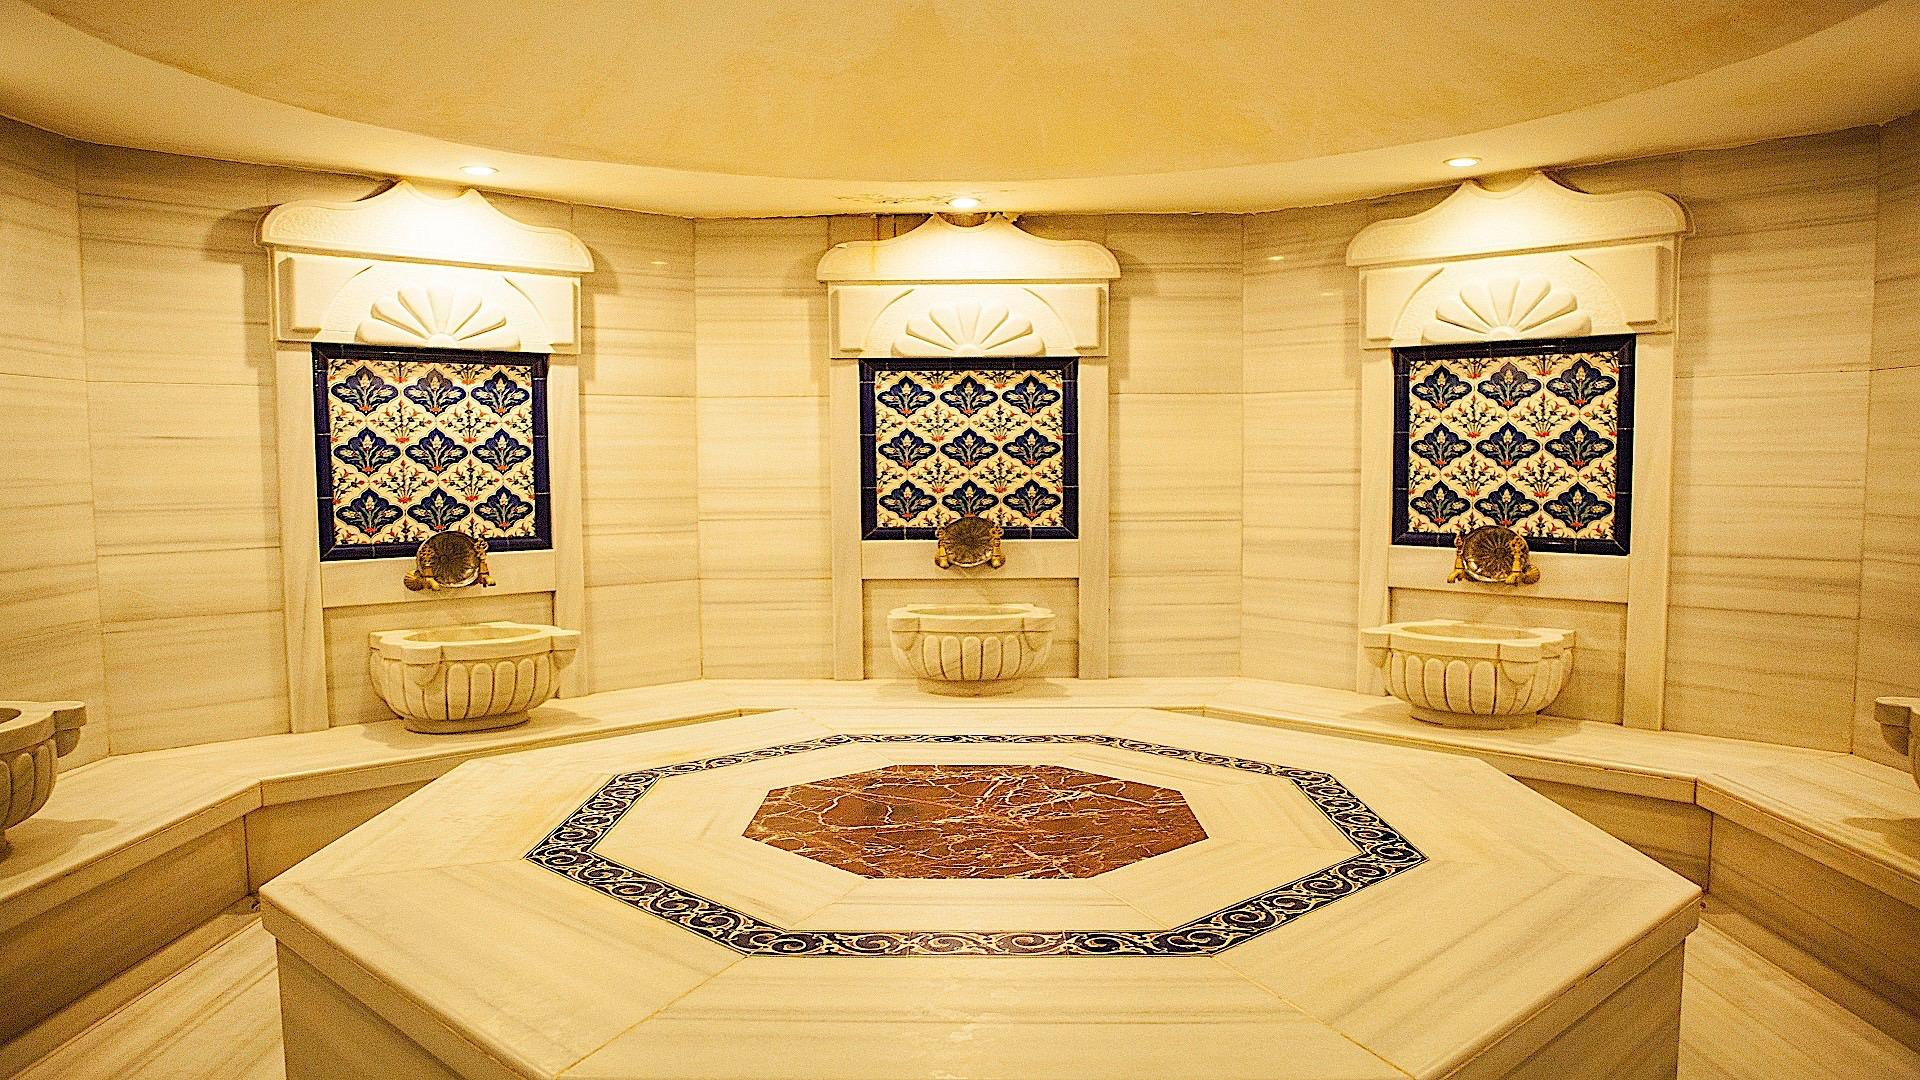 Turkish bath at Bilek Hotel Istanbul